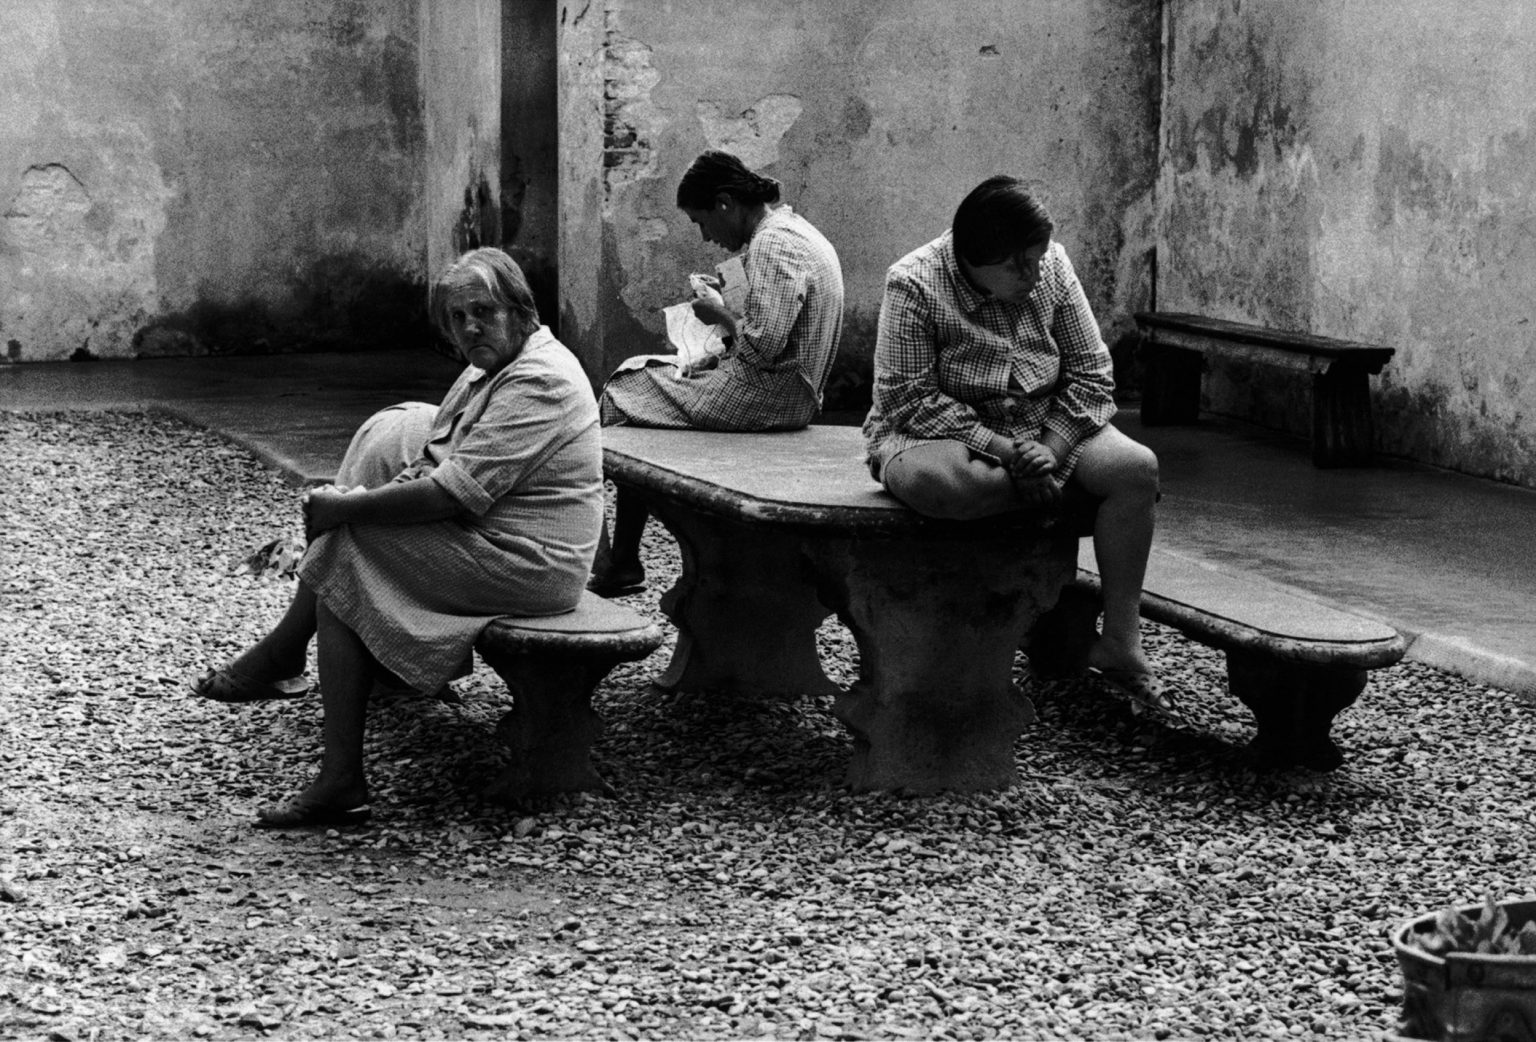 """Florence, 1968-1969 - Patients of the mental institution in the yard. ><  Firenze, 1968-1969 - Pazienti dell'istituto psichiatrico nel cortile.<p><span style=""""color: #ff0000""""><strong>*** SPECIAL   FEE   APPLIES ***</strong></span></p>"""